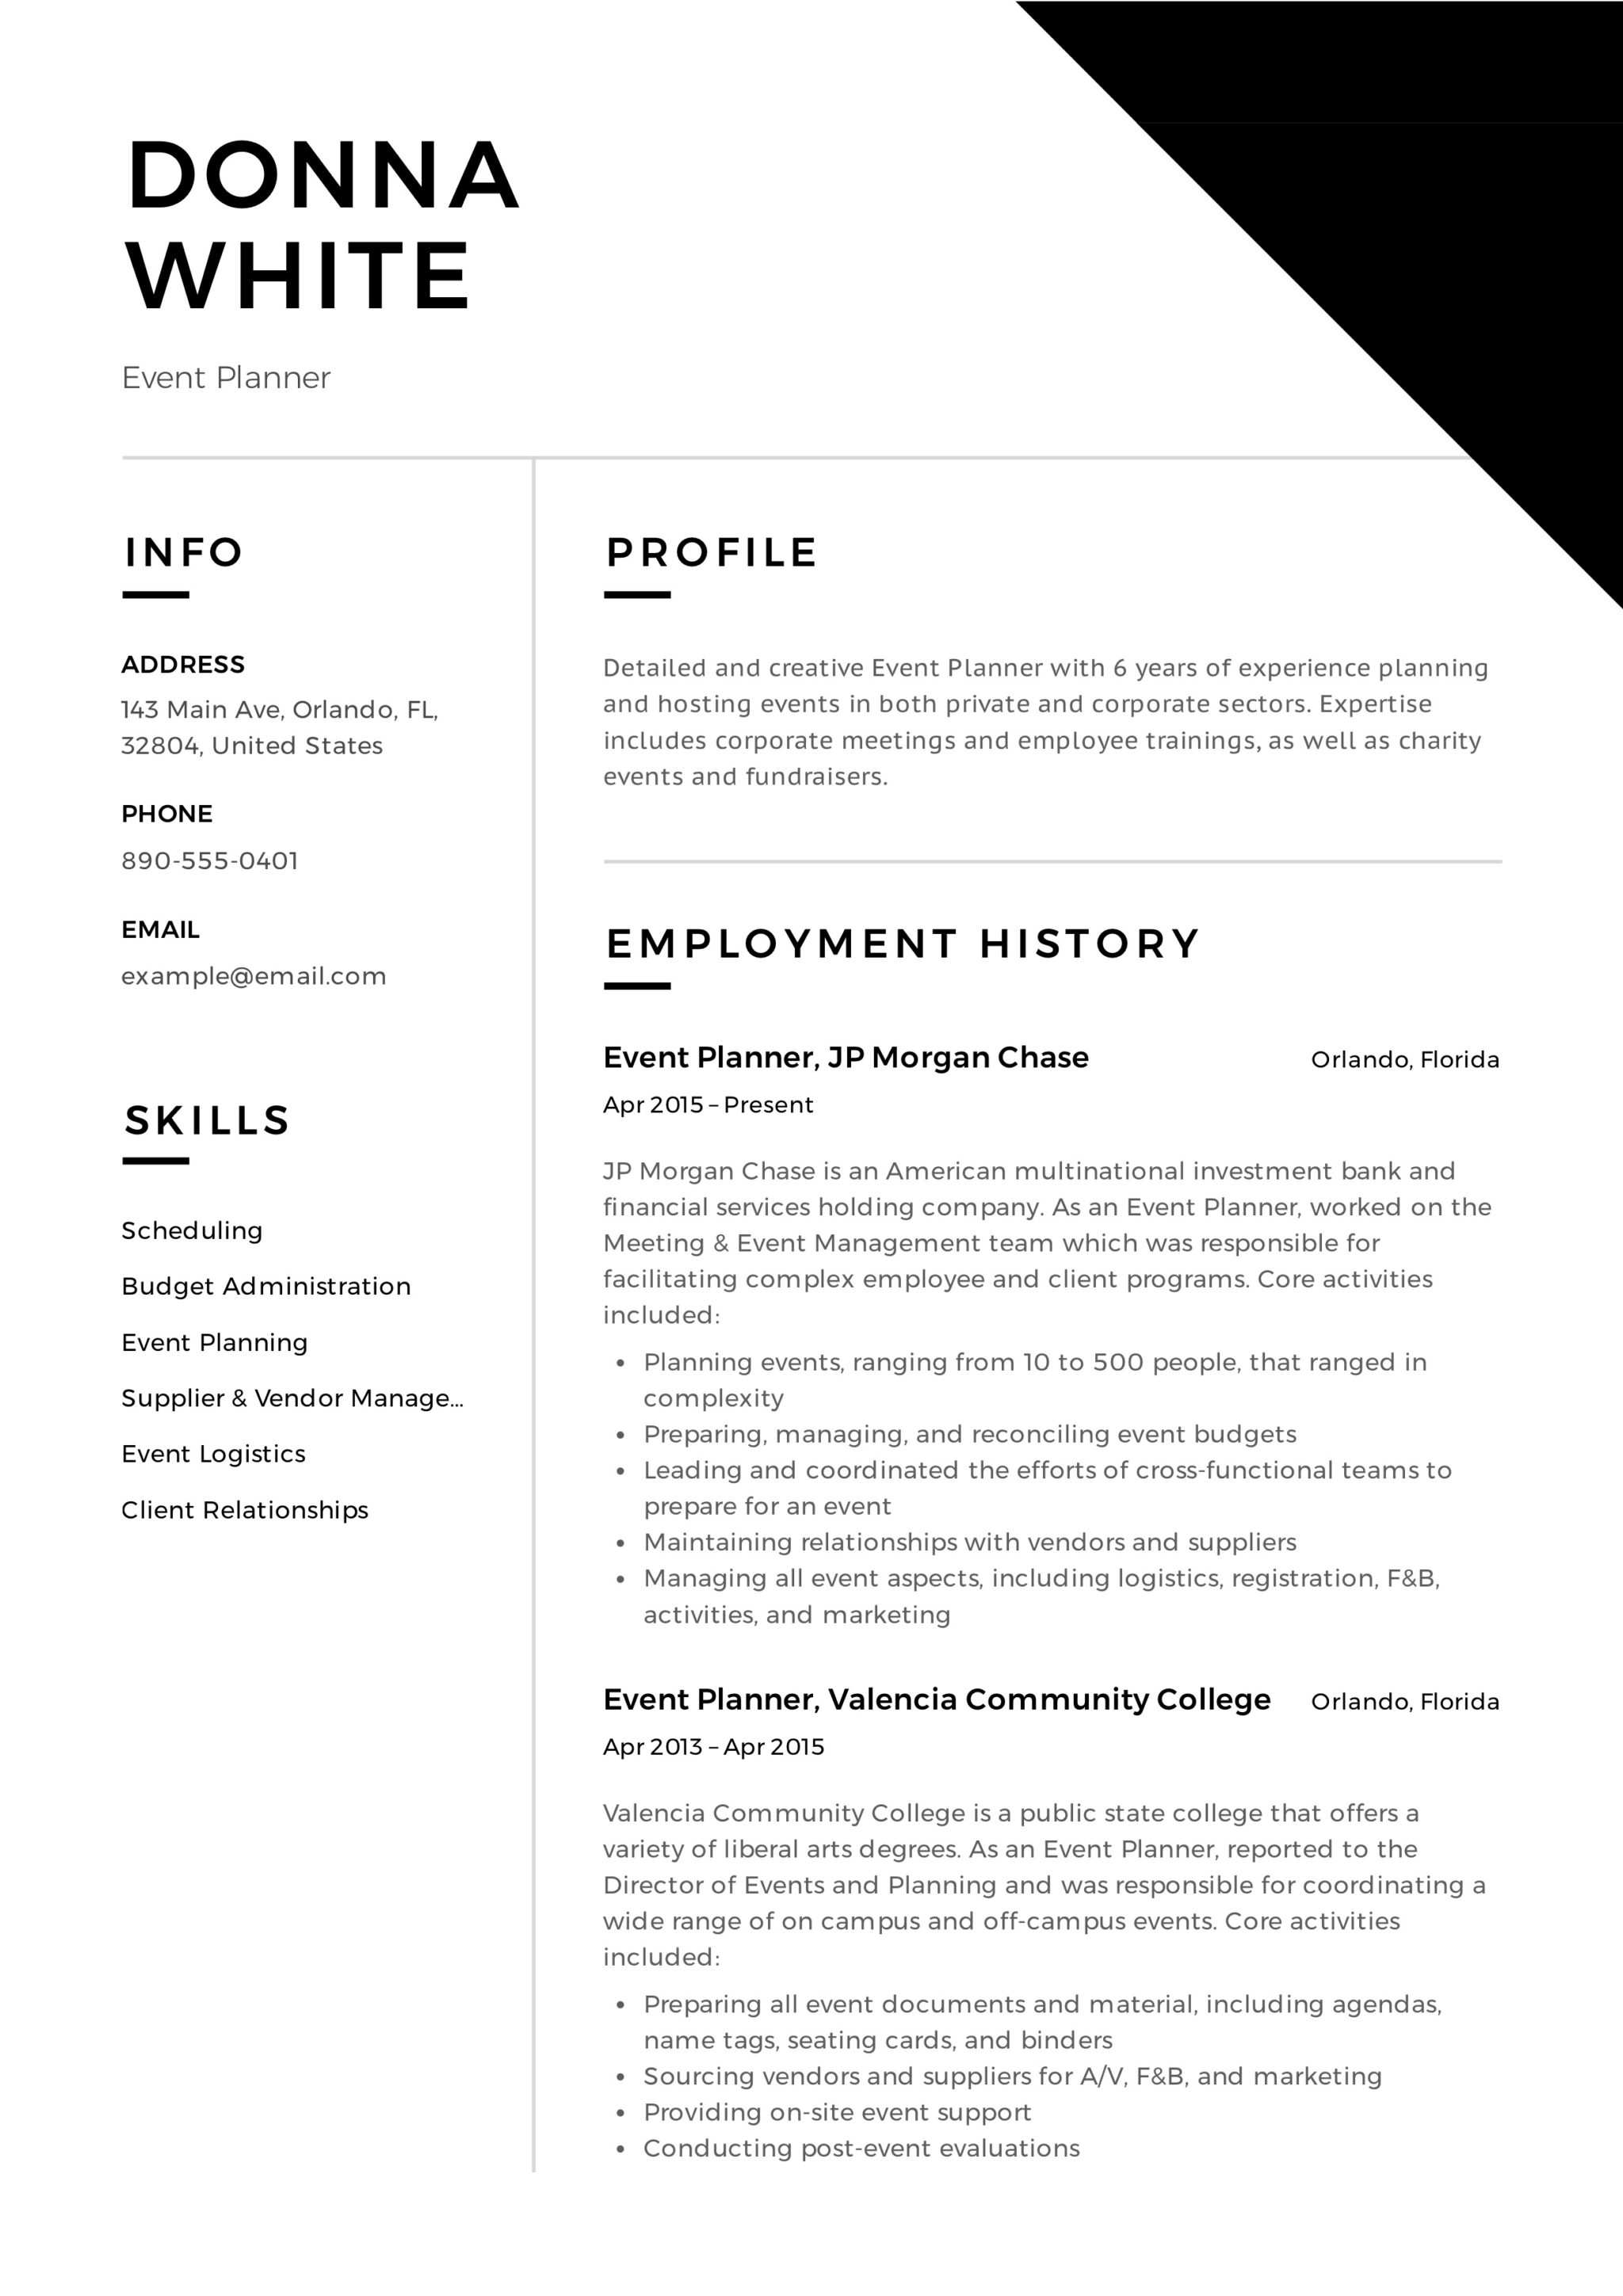 Wedding Planner Resume Sample 12 Event Planner Resume Sample S 2018 Free Download